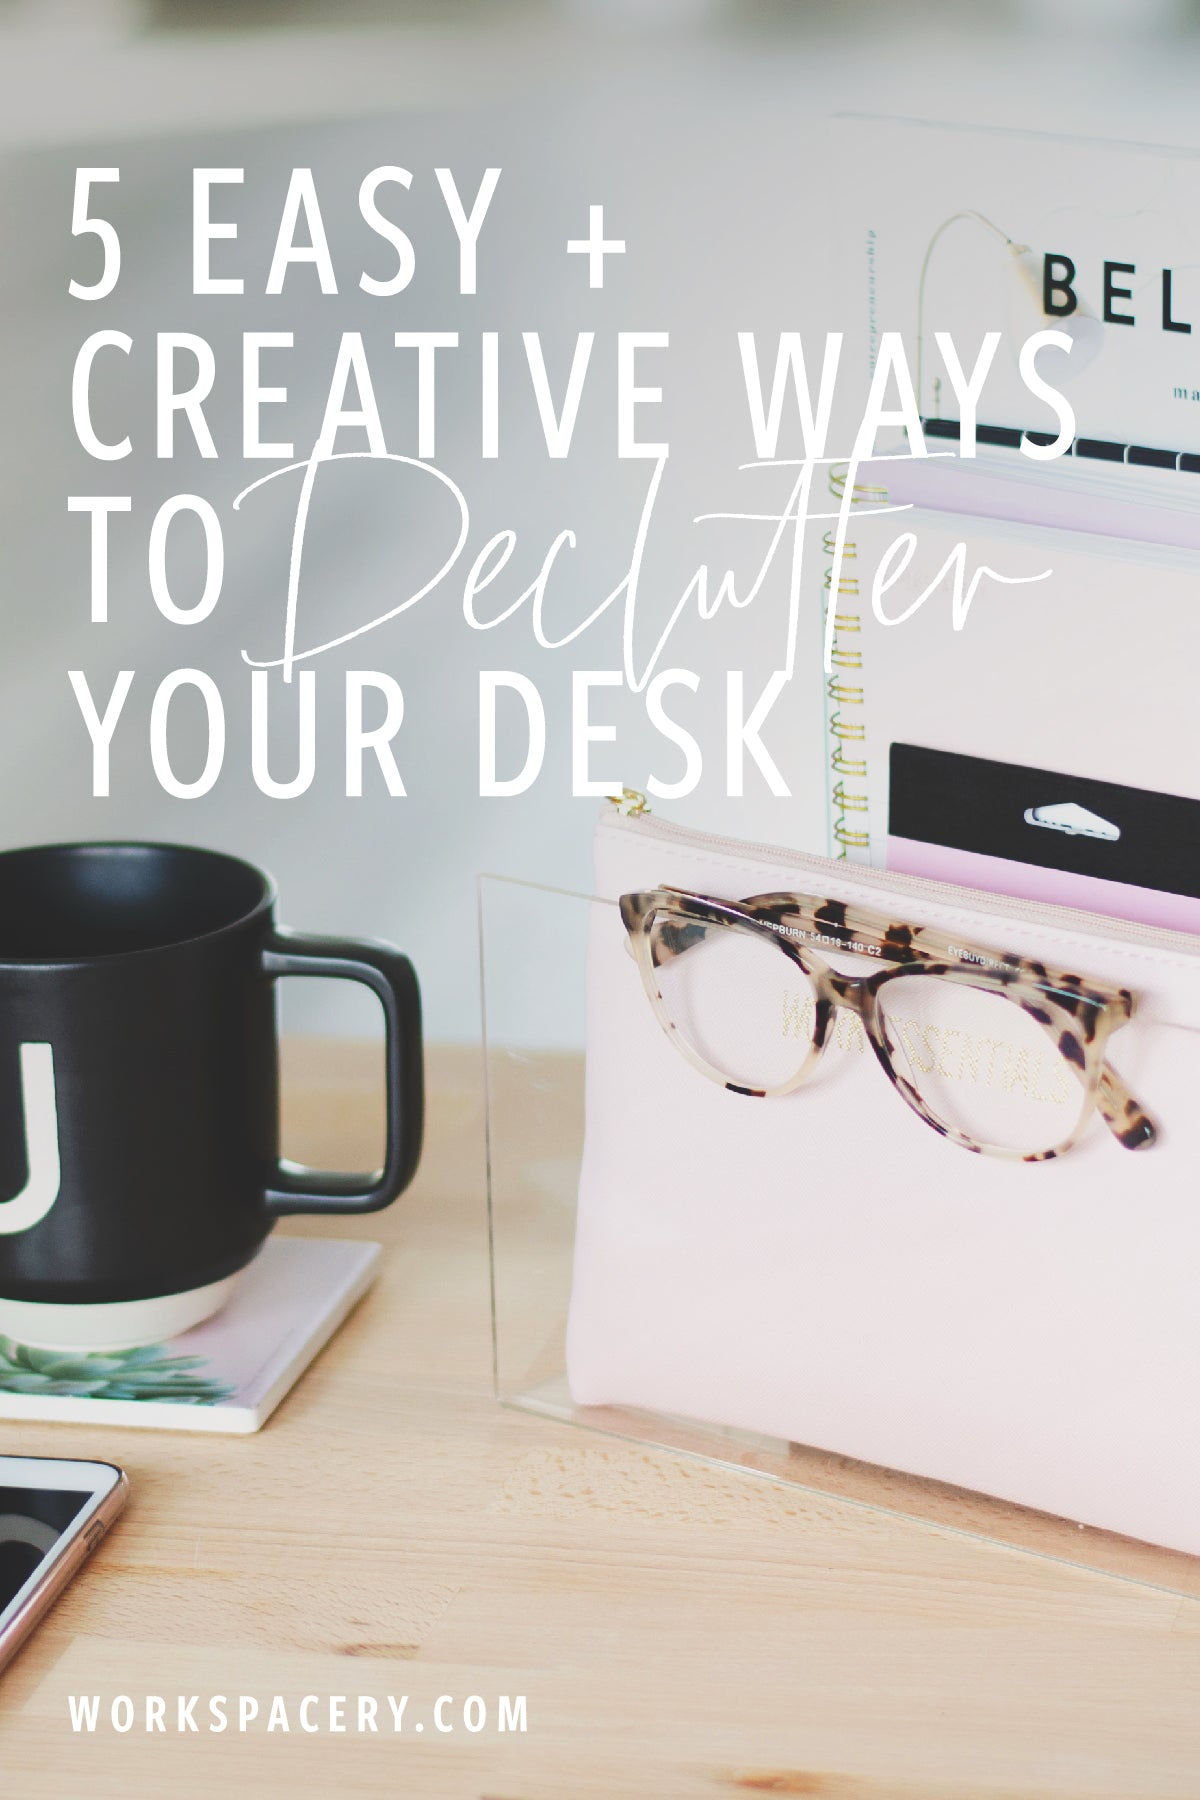 5 Easy and Creative Ways to Declutter Your Desk